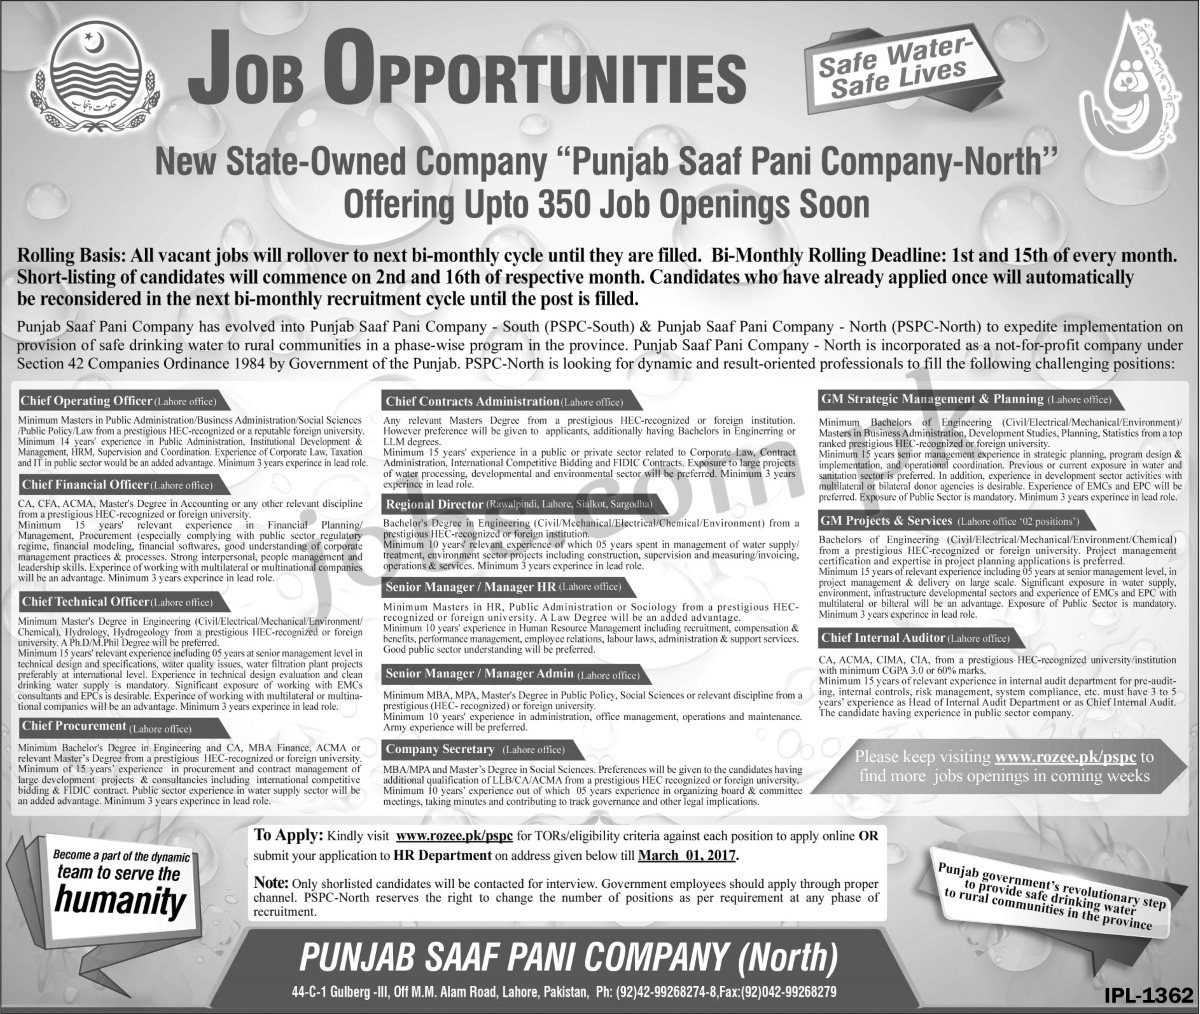 punjab saaf pani company pspc jobs available for  punjab saaf pani company pspc jobs 2017 available for 350 vacancies in all departments at pspc north to be filled immediately